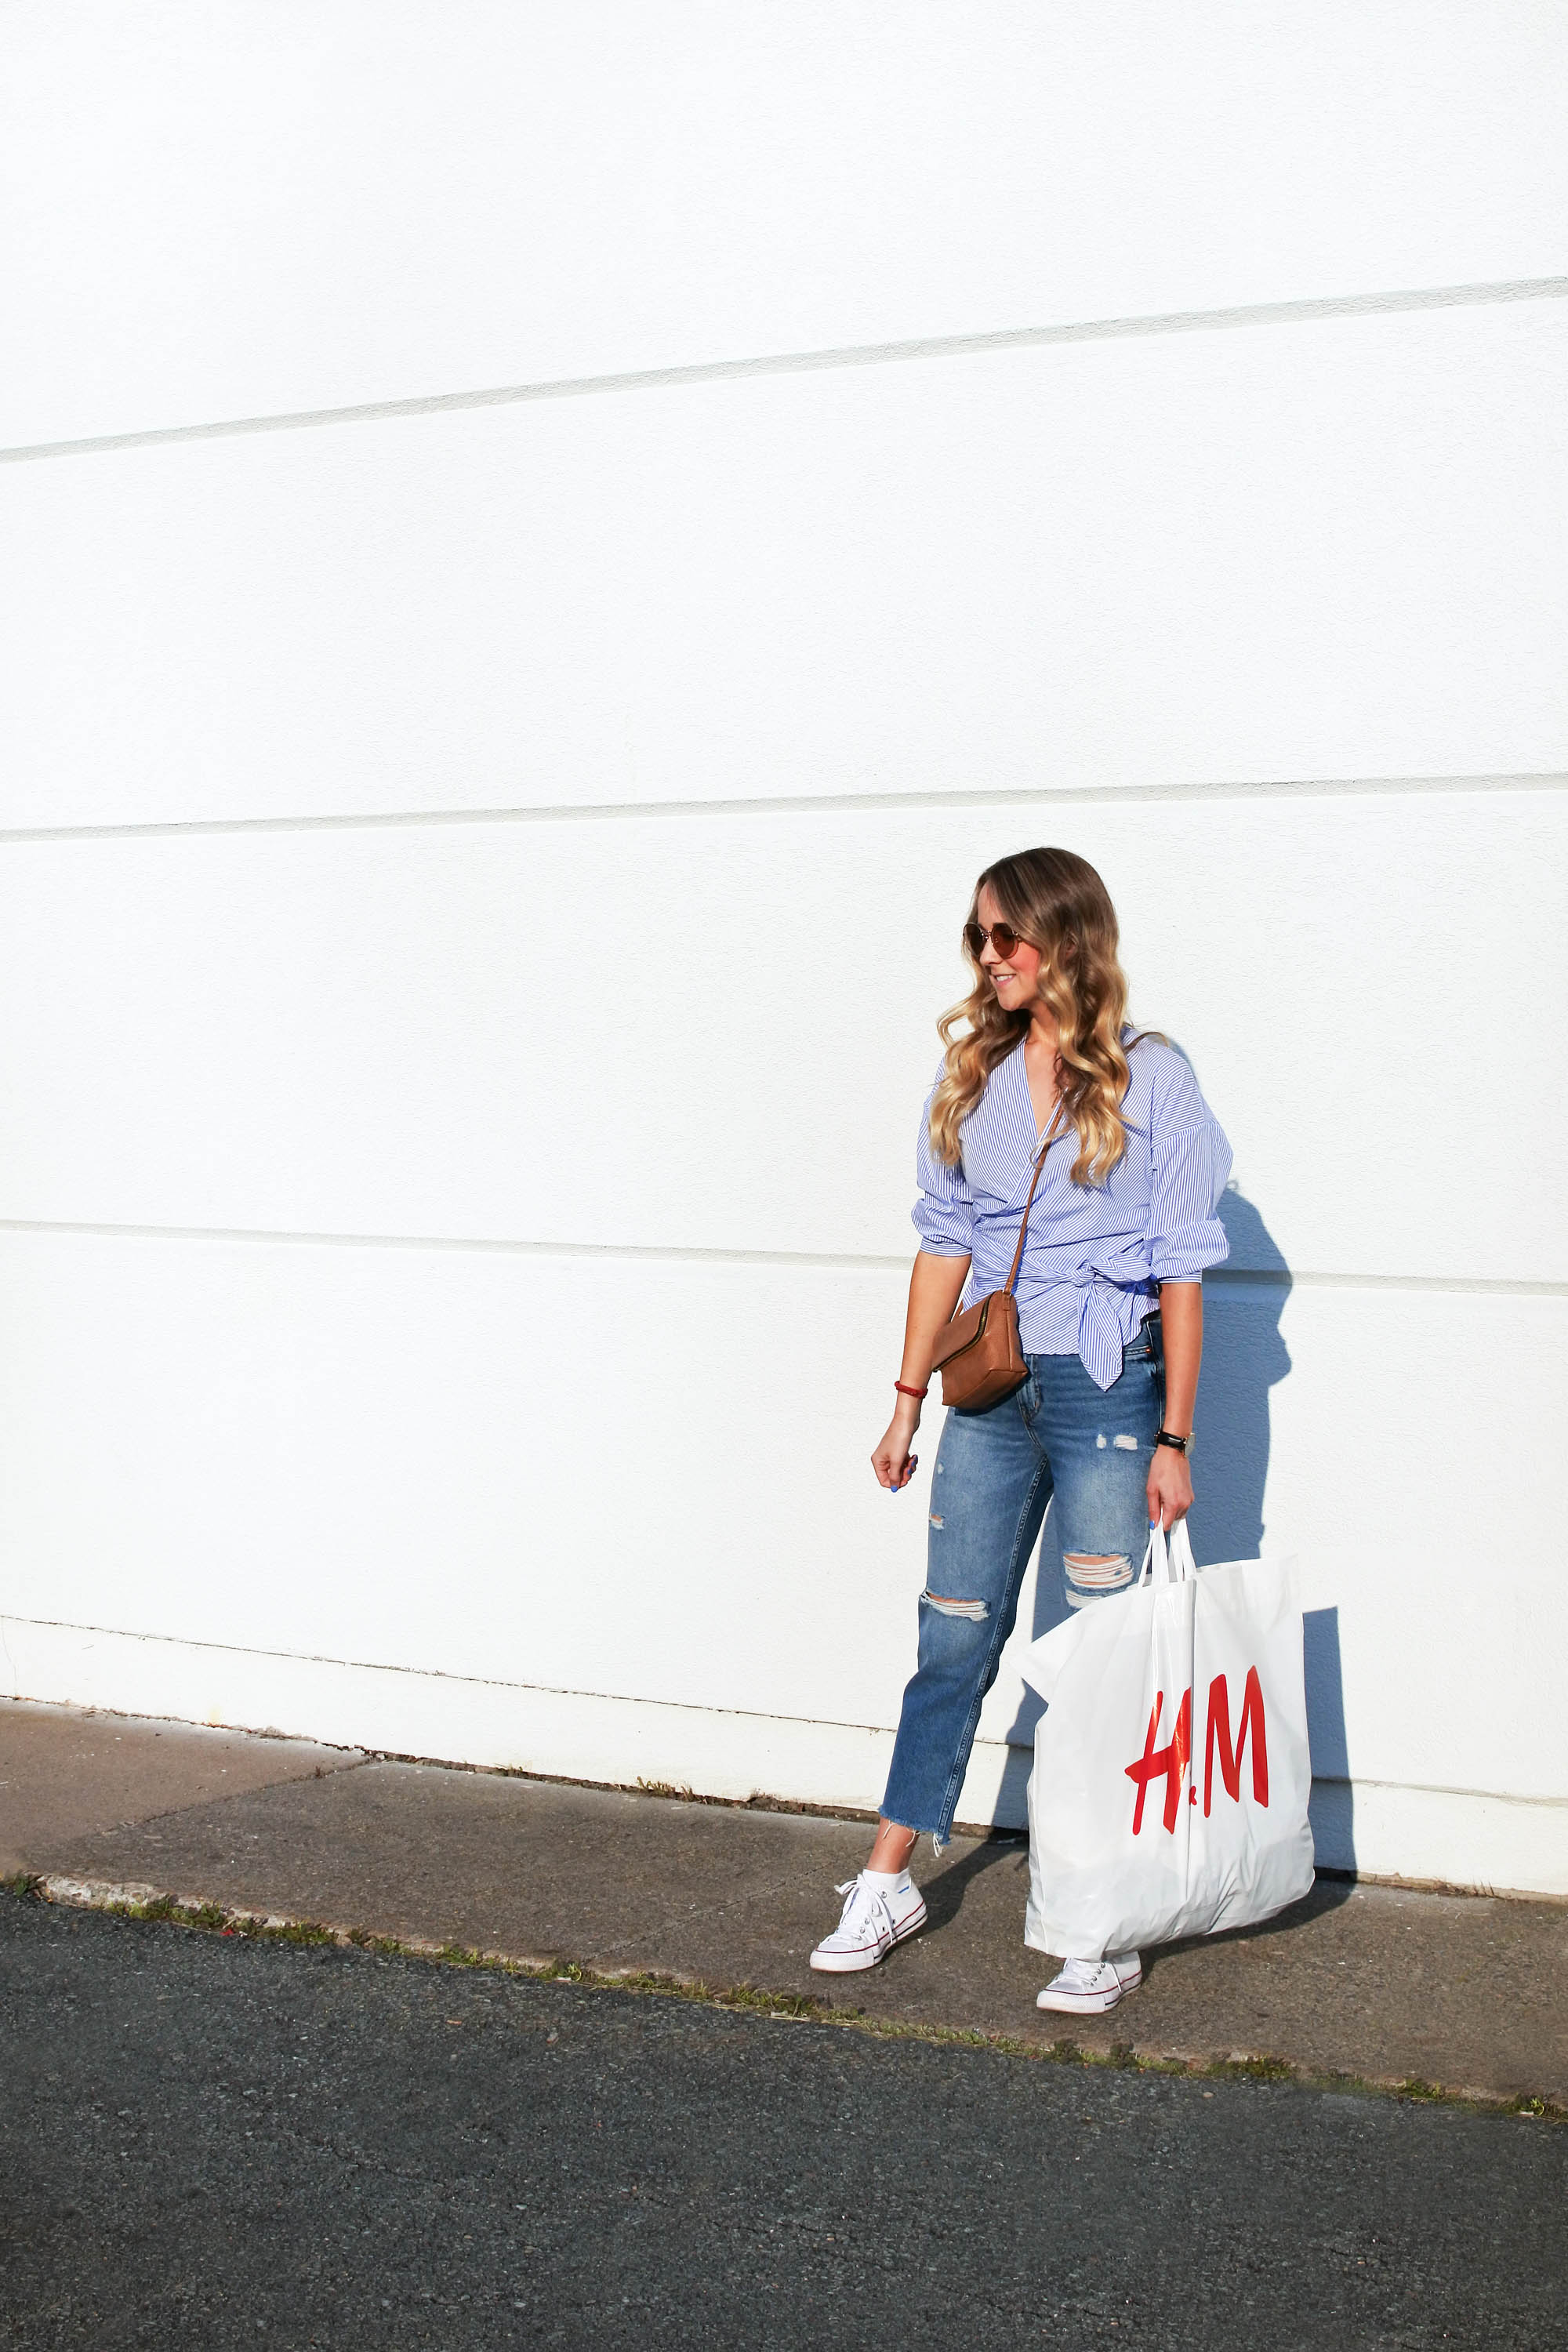 H&m grand opening giveaways